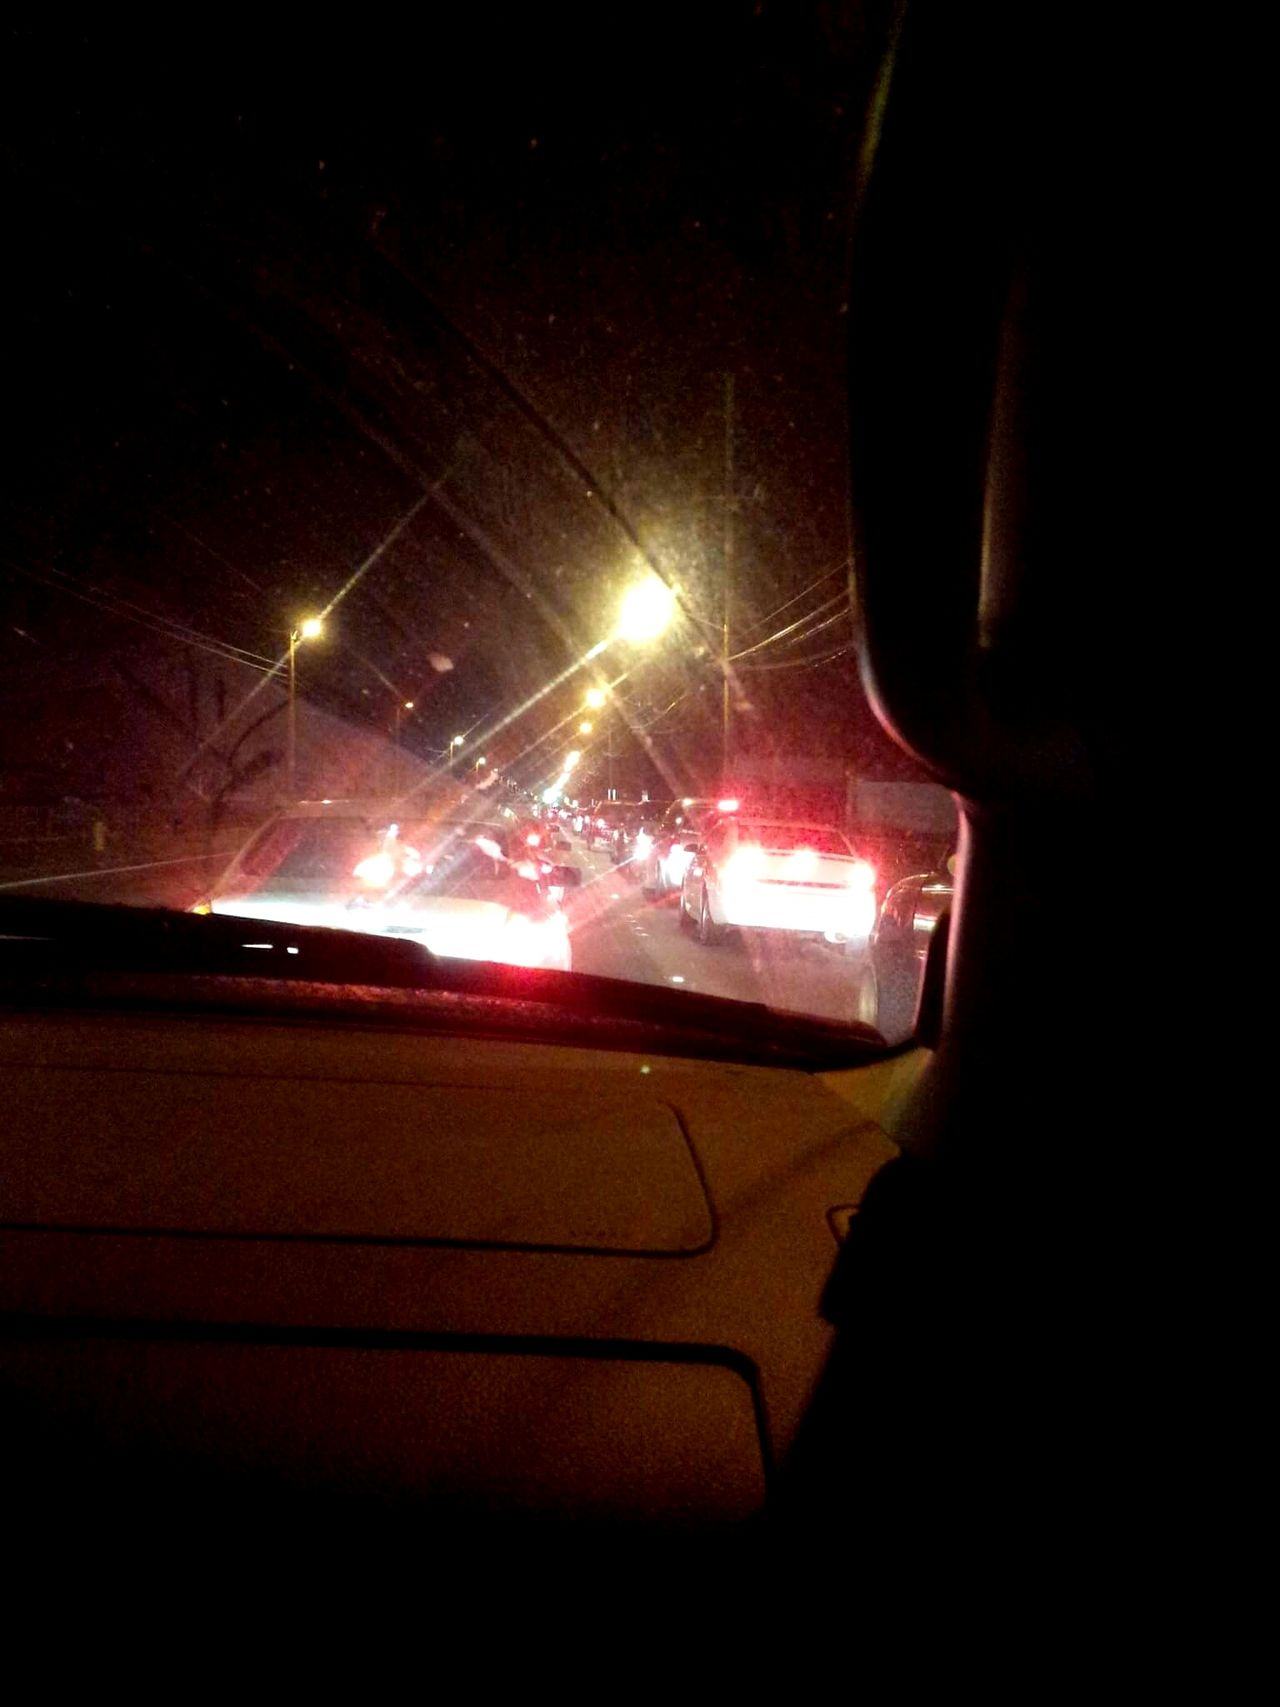 Night Transportation Car Illuminated Car Interior Trafficjam Brake Lights